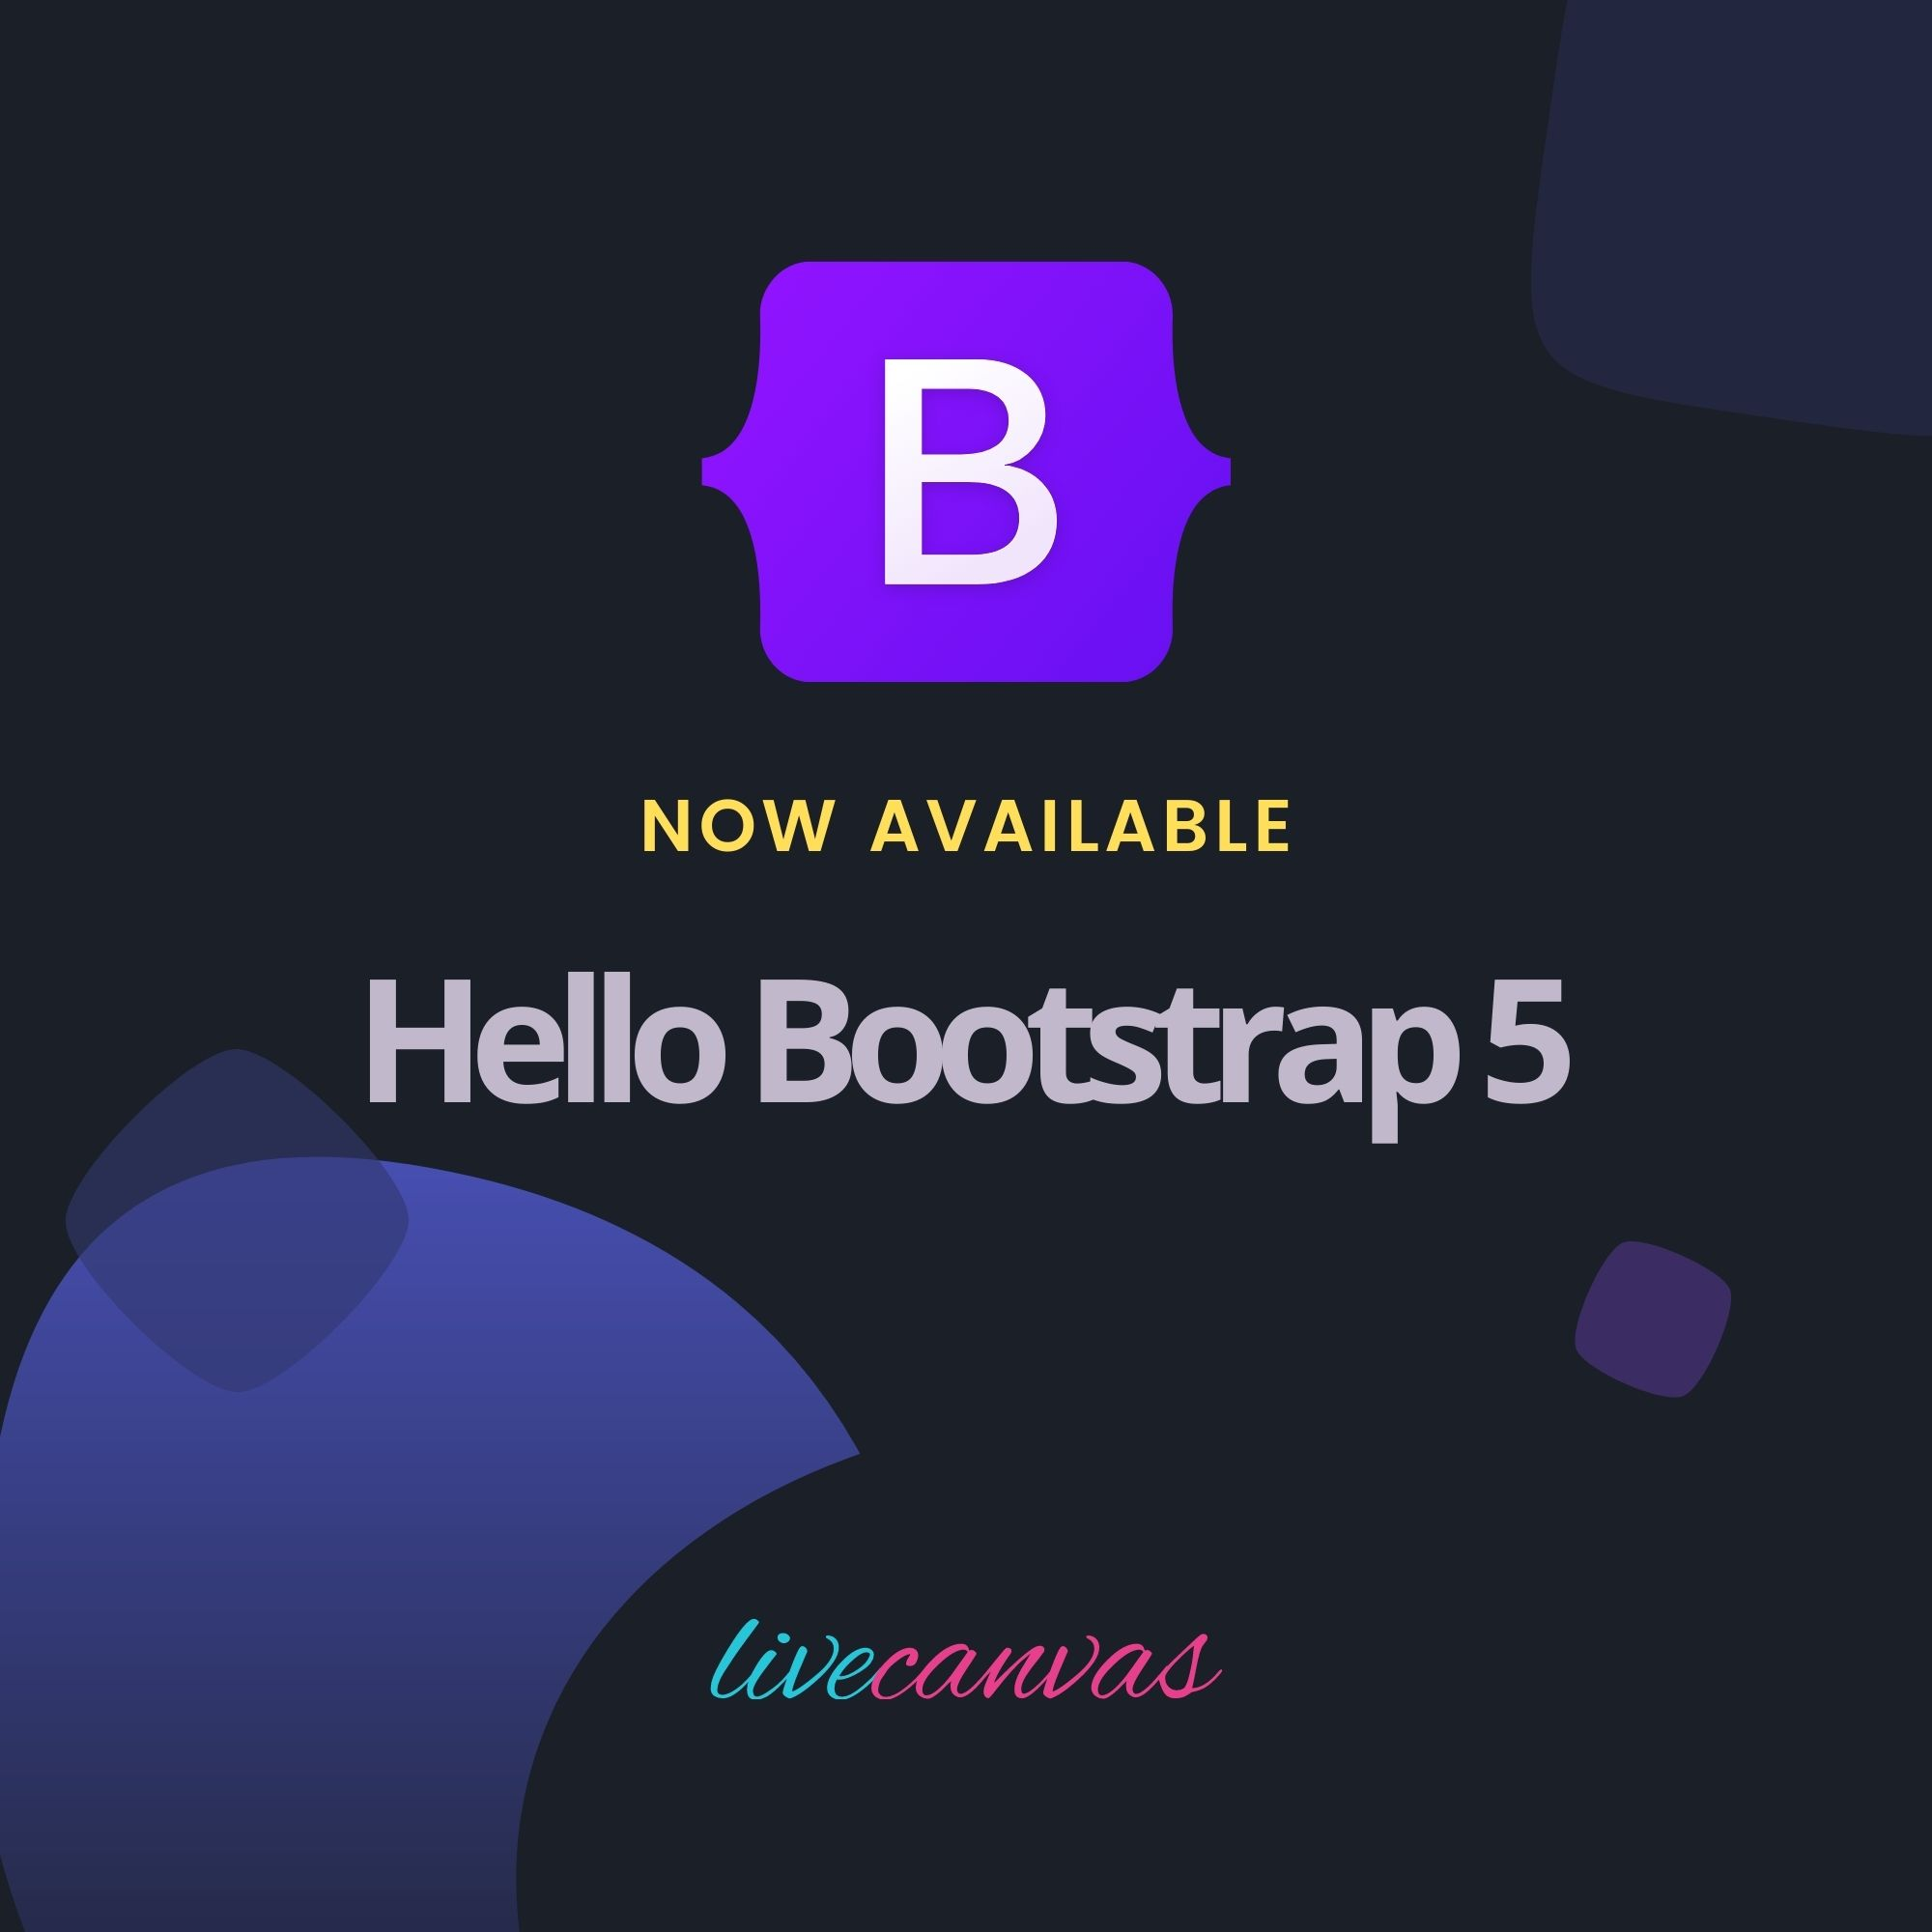 Introducing Bootstrap 5 support: LiveCanvas 2.0 and Picostrap5